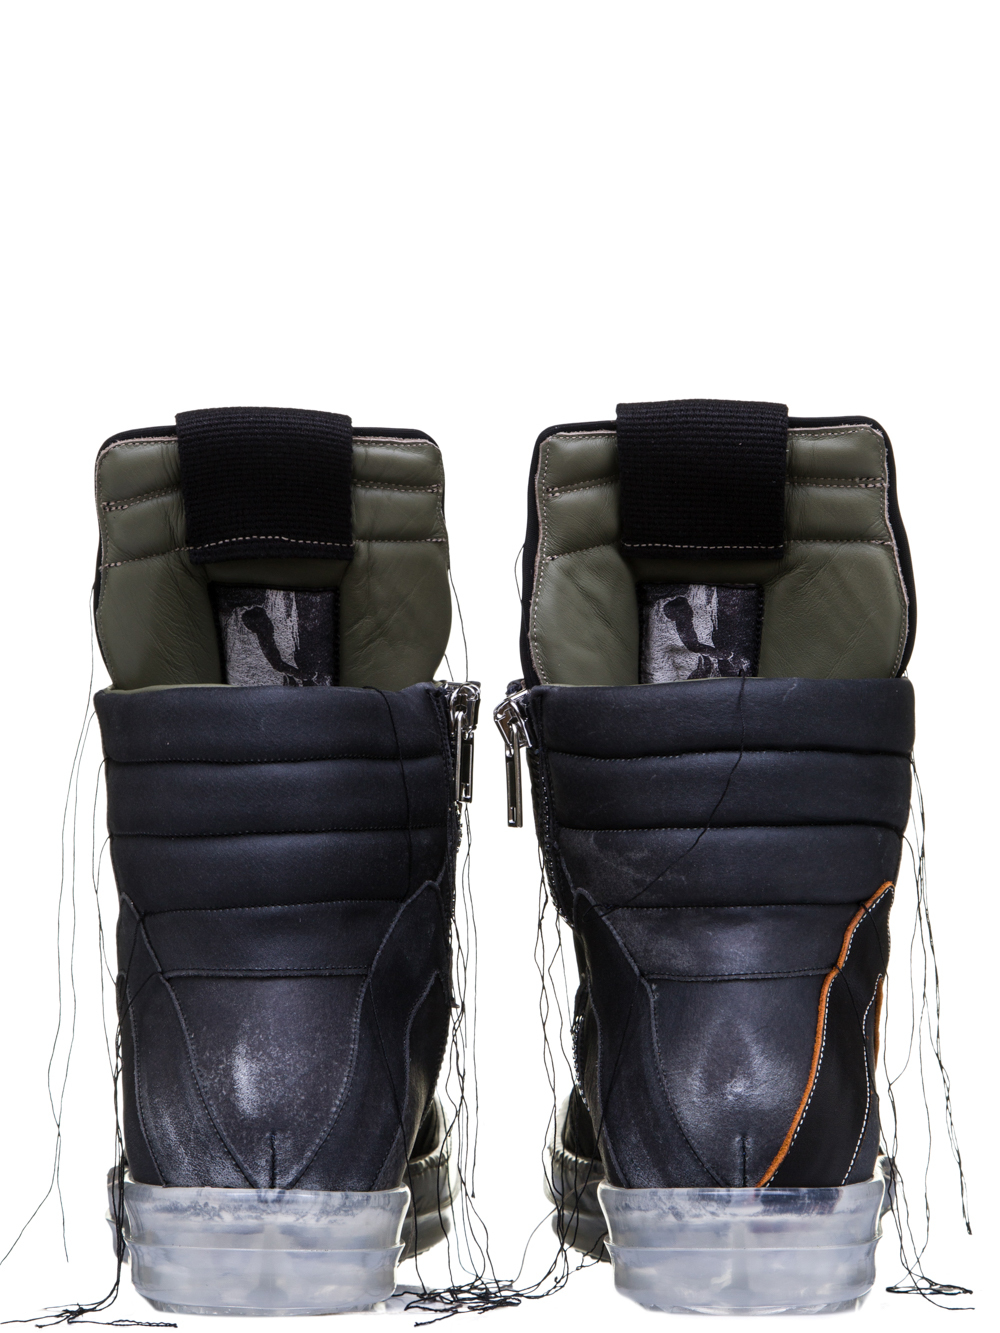 RICK OWENS SS19 BABEL GEOBASKETS IN BLUEJAY BLUE CALF LEATHER